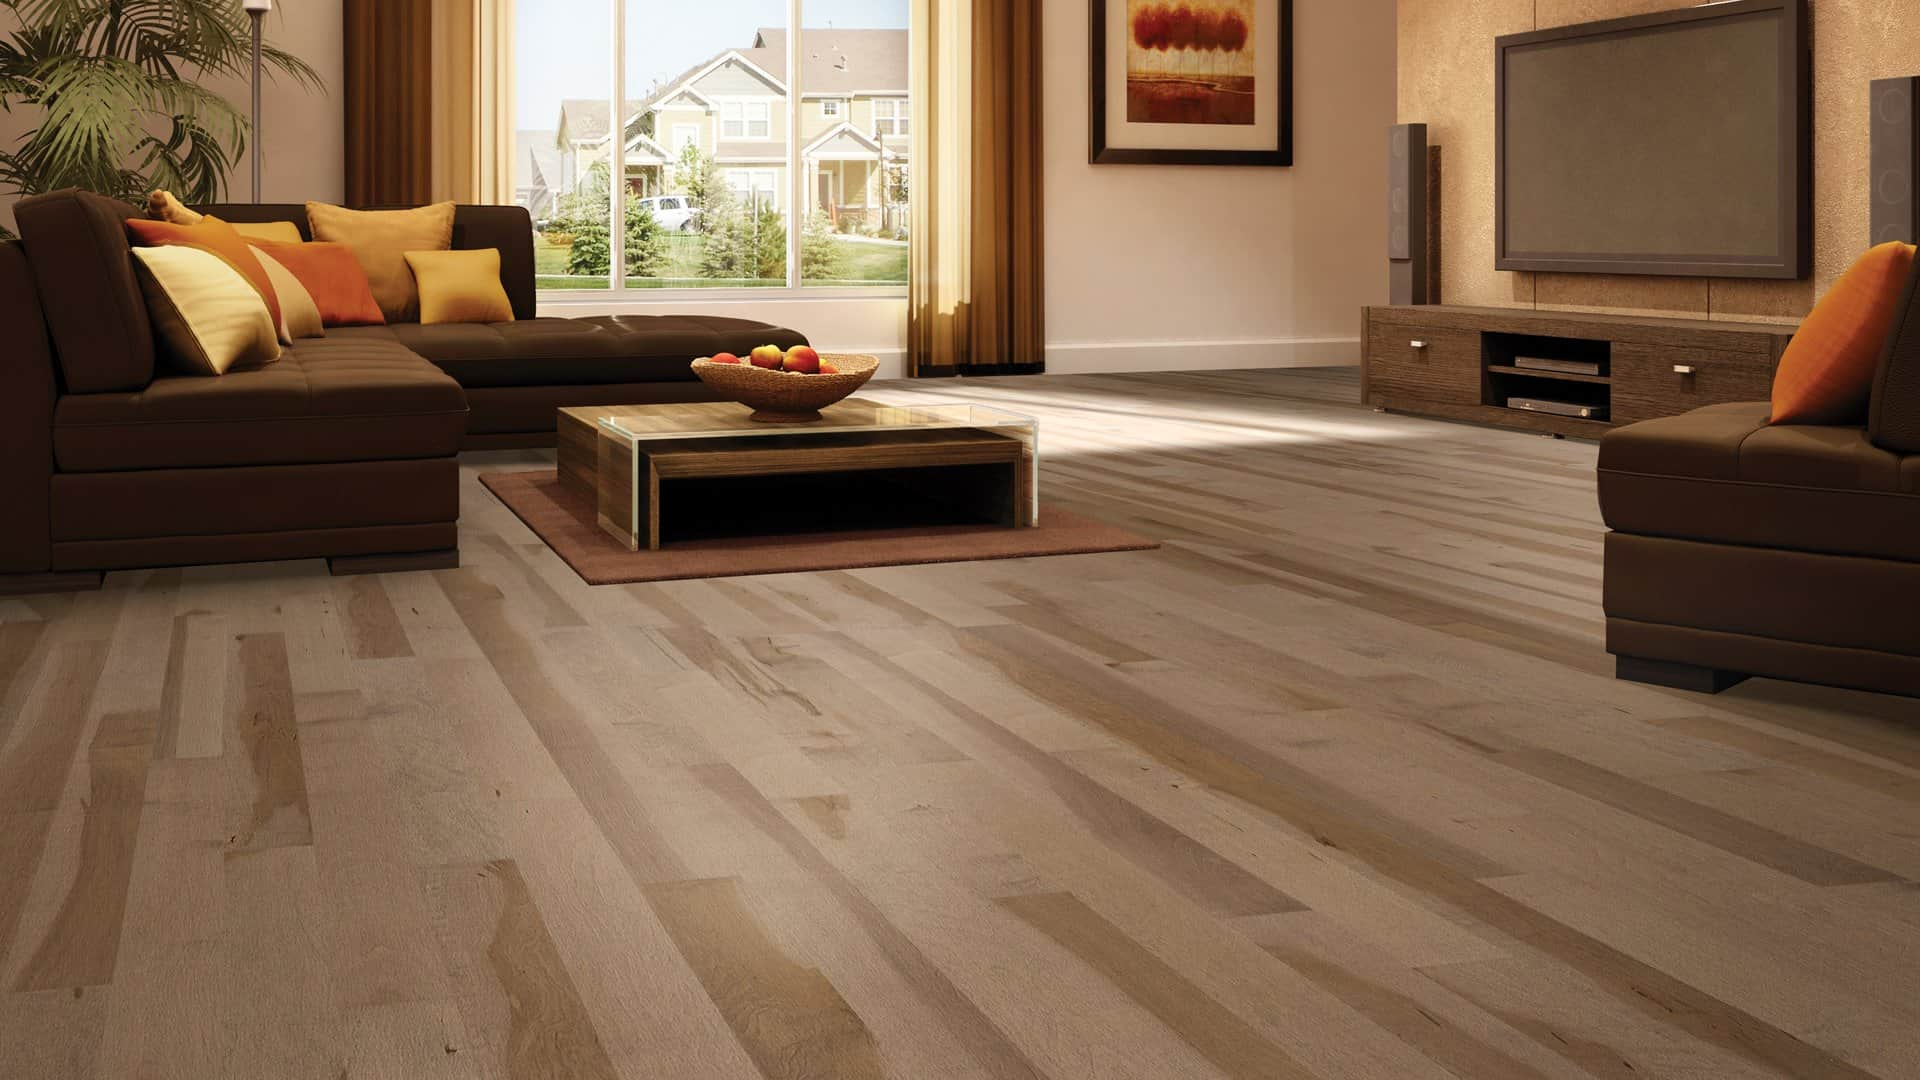 Hardwood Floor Room Decor